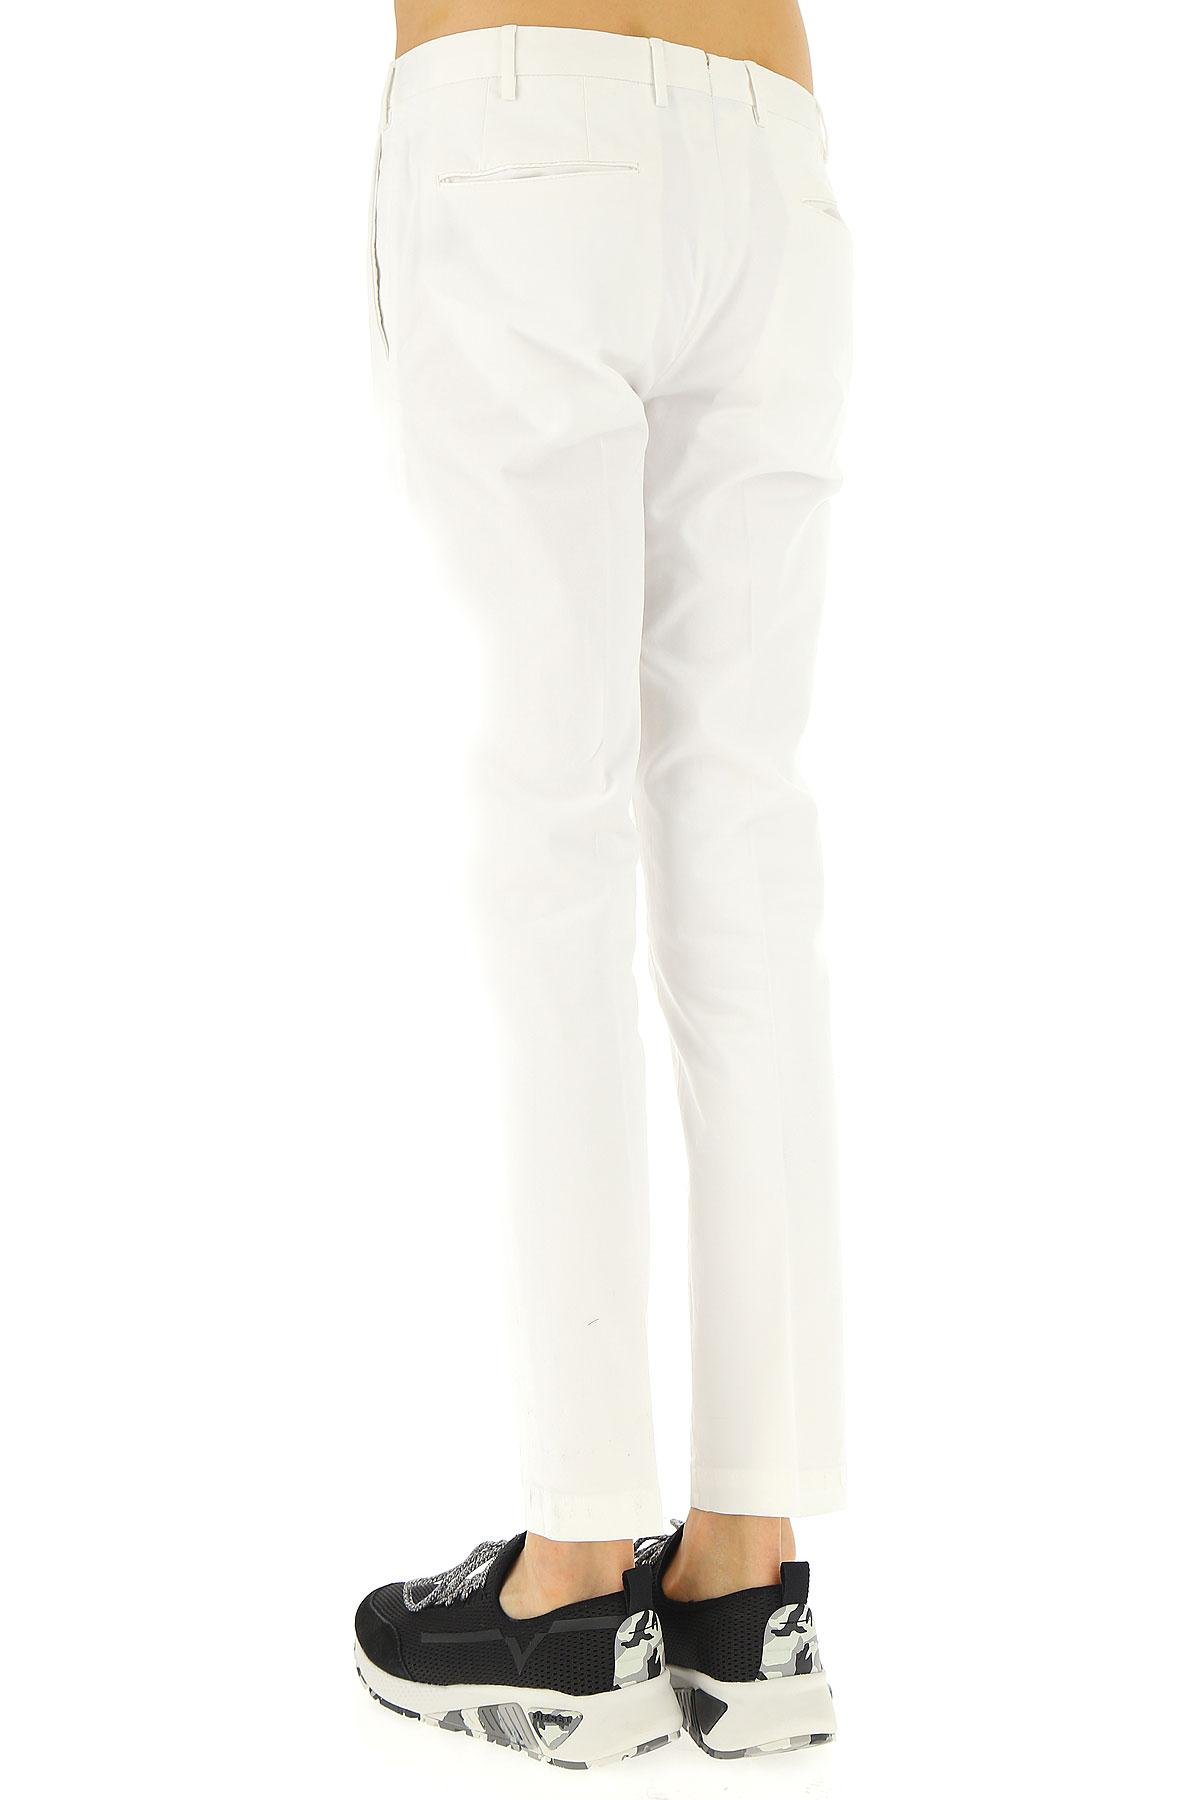 54f2275b7cf9 Lyst - PT01 Pants For Men On Sale in White for Men - Save 5%